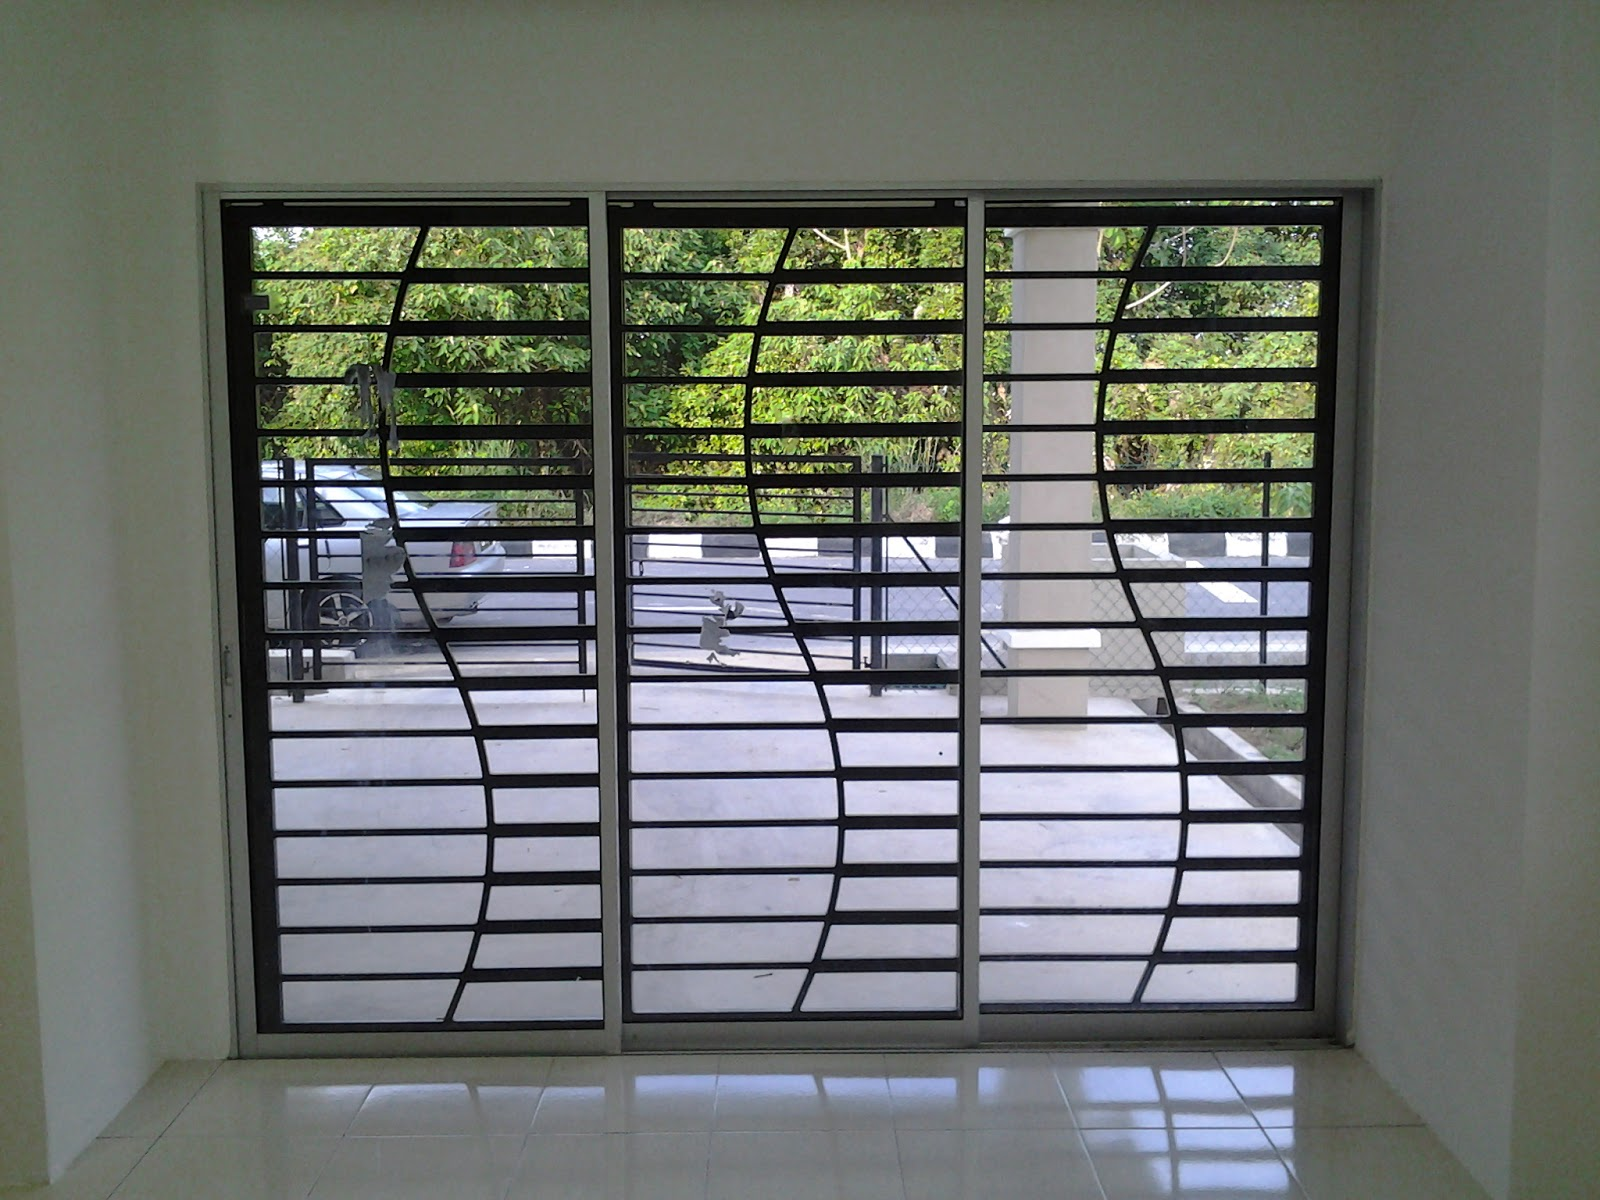 Rumahku syurgaku grill assemble for Window door design